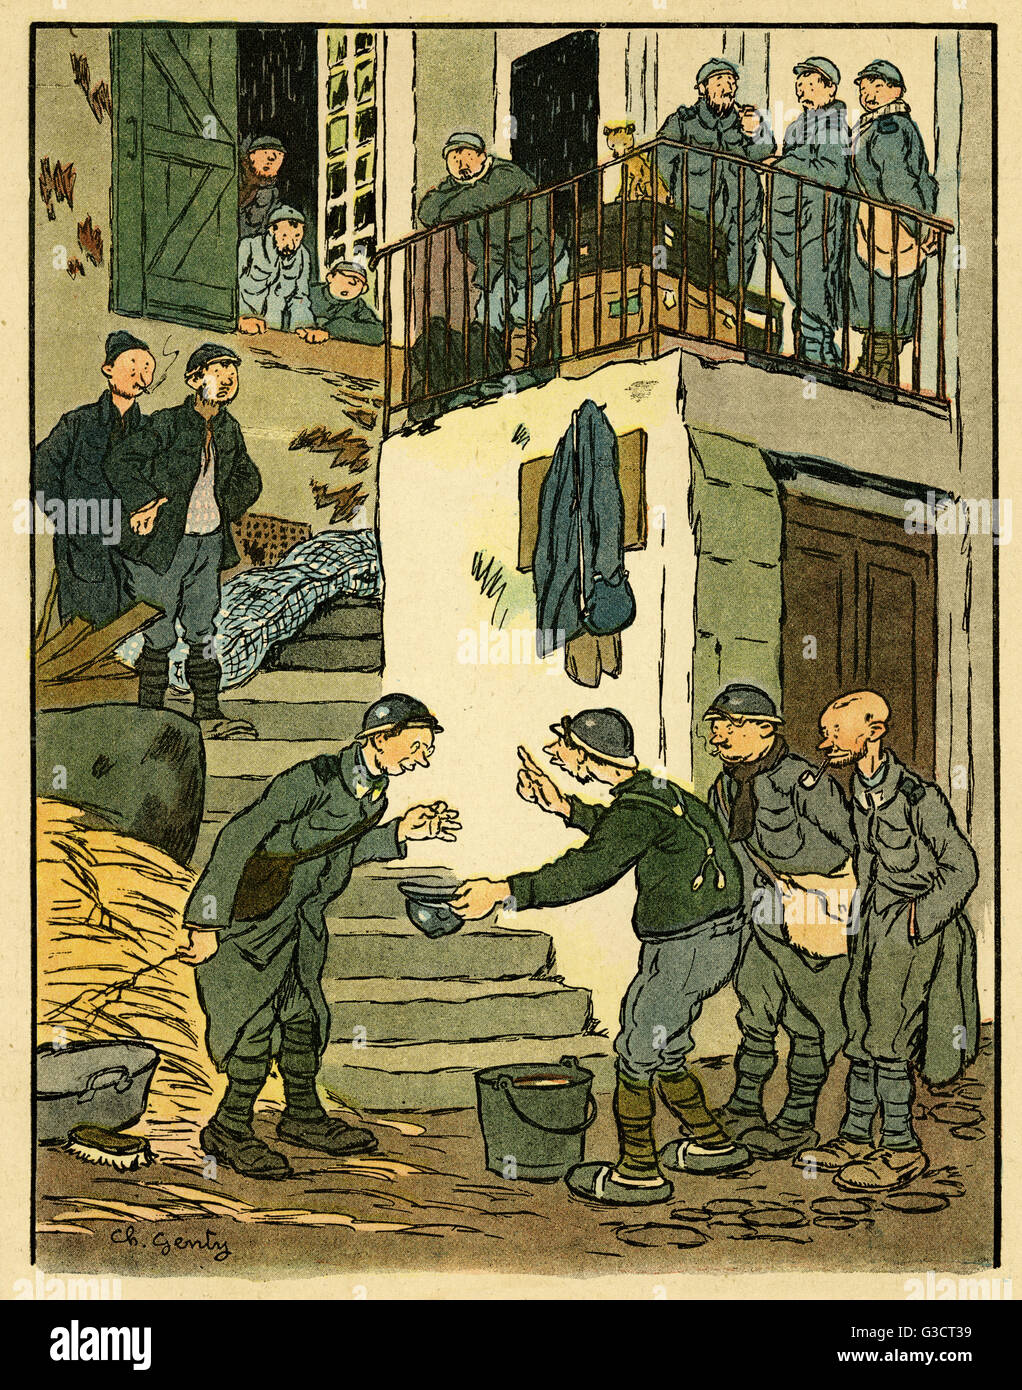 Cartoon, A sensitive man.  A group of French soldiers are sharing a bucket of Pinard (cheap wine or plonk).  Do - Stock Image